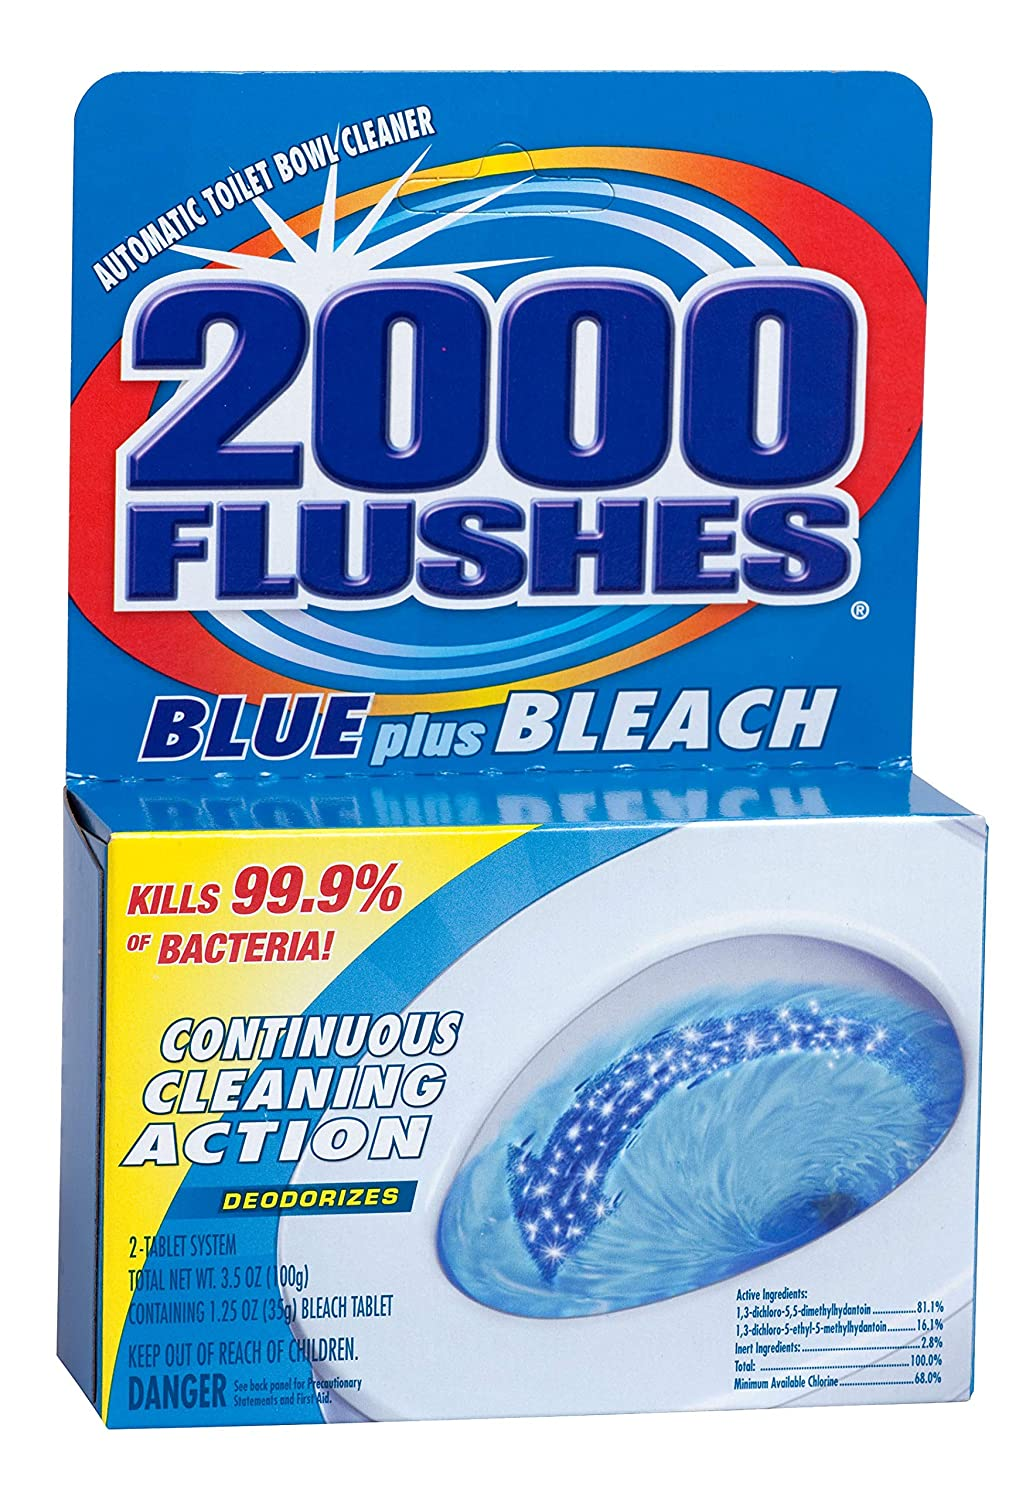 Max 59% OFF 2000 FLUSHES Attention brand 208082 Blue Plus Clean Toilet Bowl Automatic Bleach